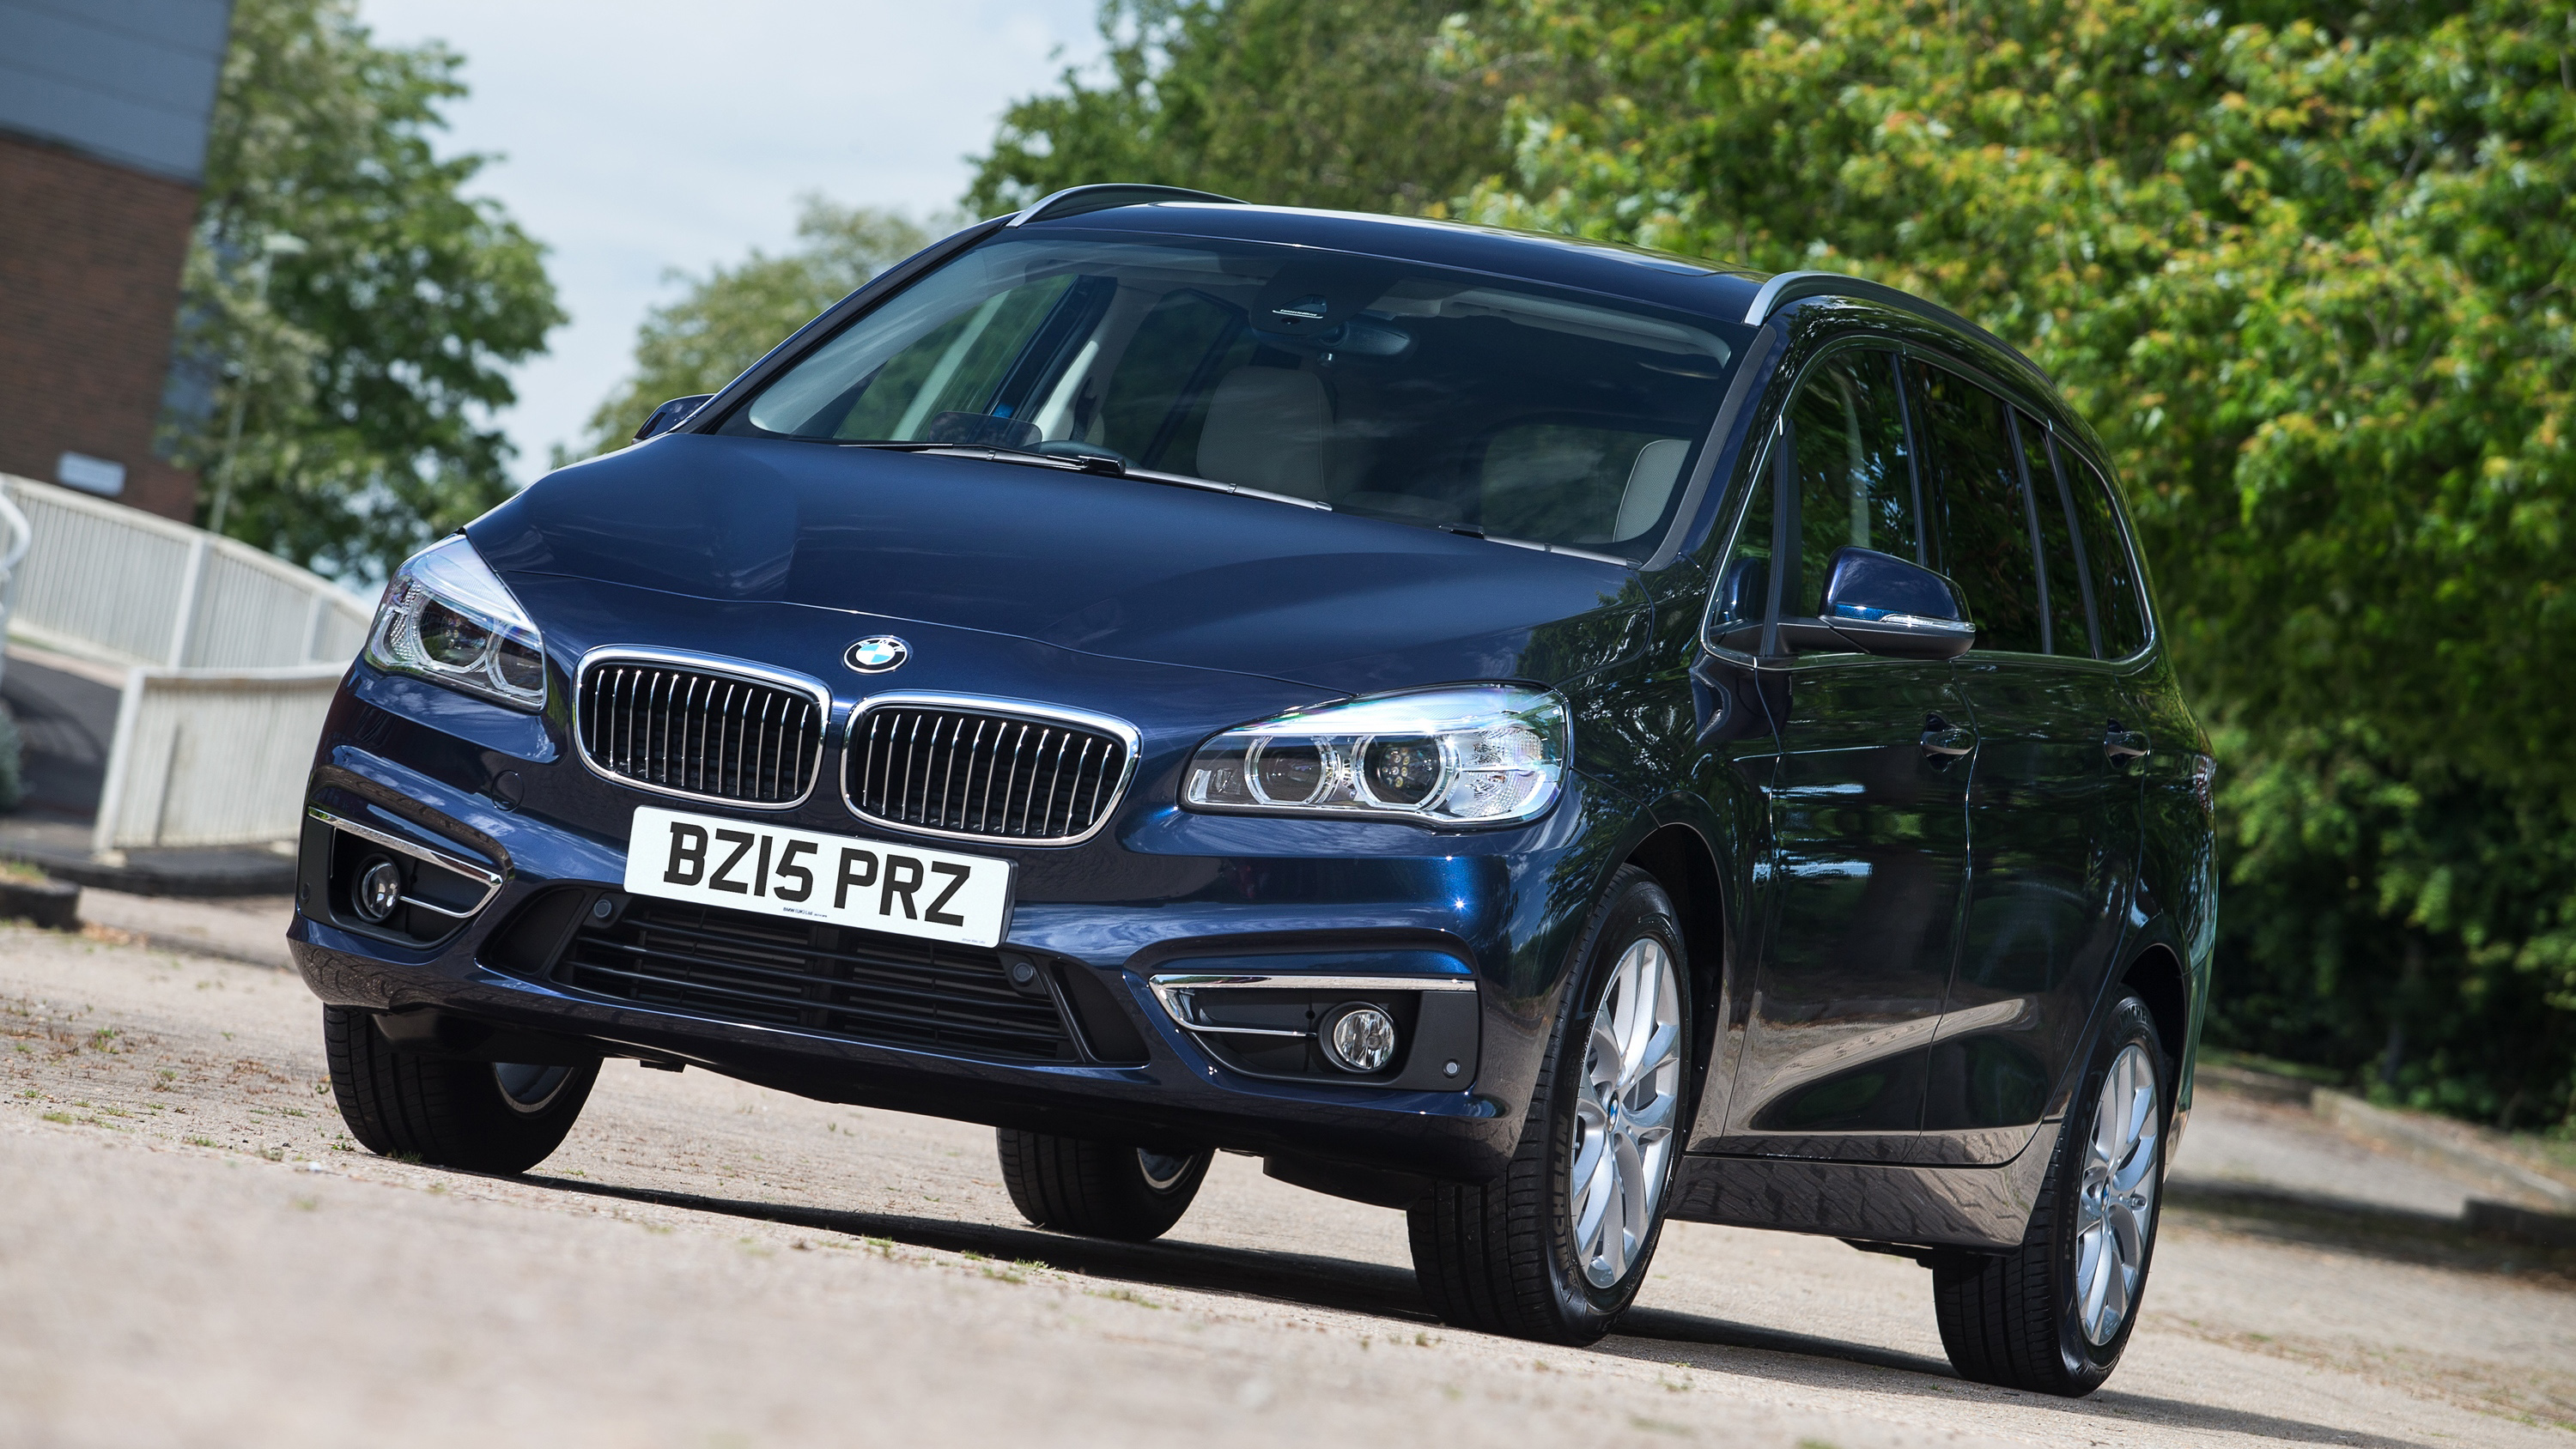 Bmw 220i gran tourer m sport package 2015 wallpapers and hd images - Bmw 2 Series Gran Tourer 2015 Present